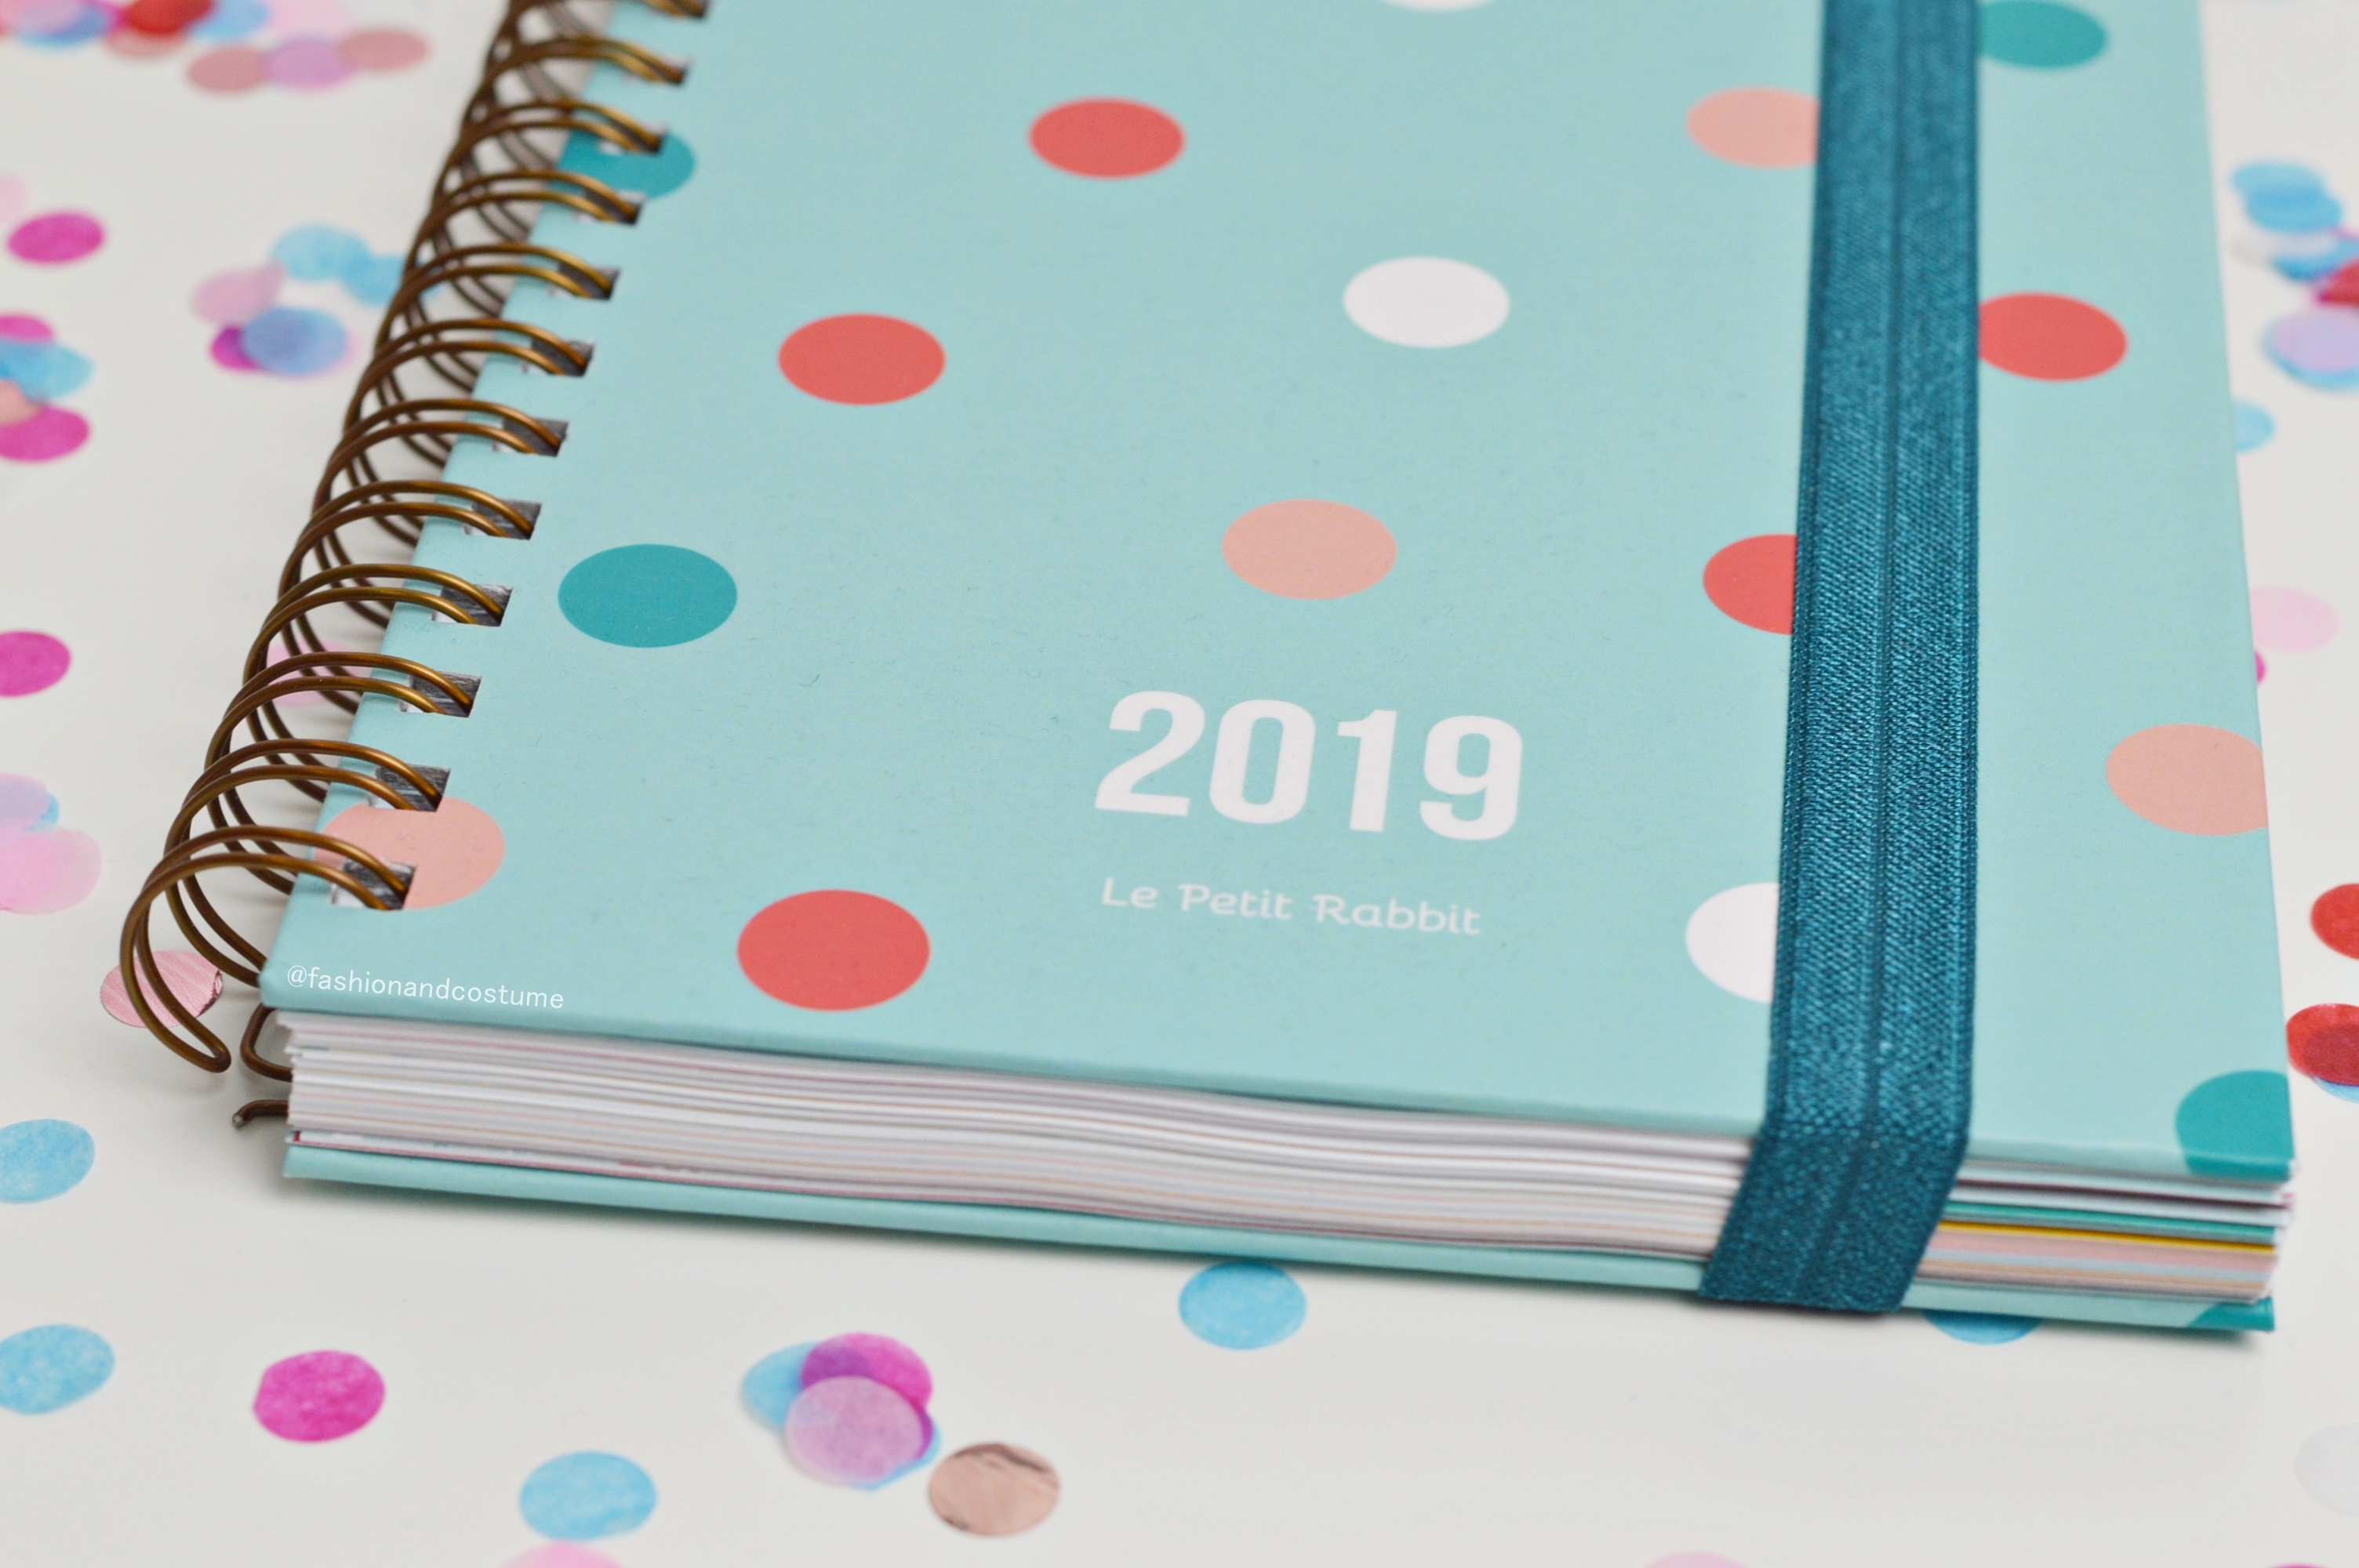 agenda-planner-2019-settimanale-weekly-giulia-lepetitrabbit-le-petit-rabbit-fashion-and-costume-fashionandcostume-graphic-designer-sticker-handmade